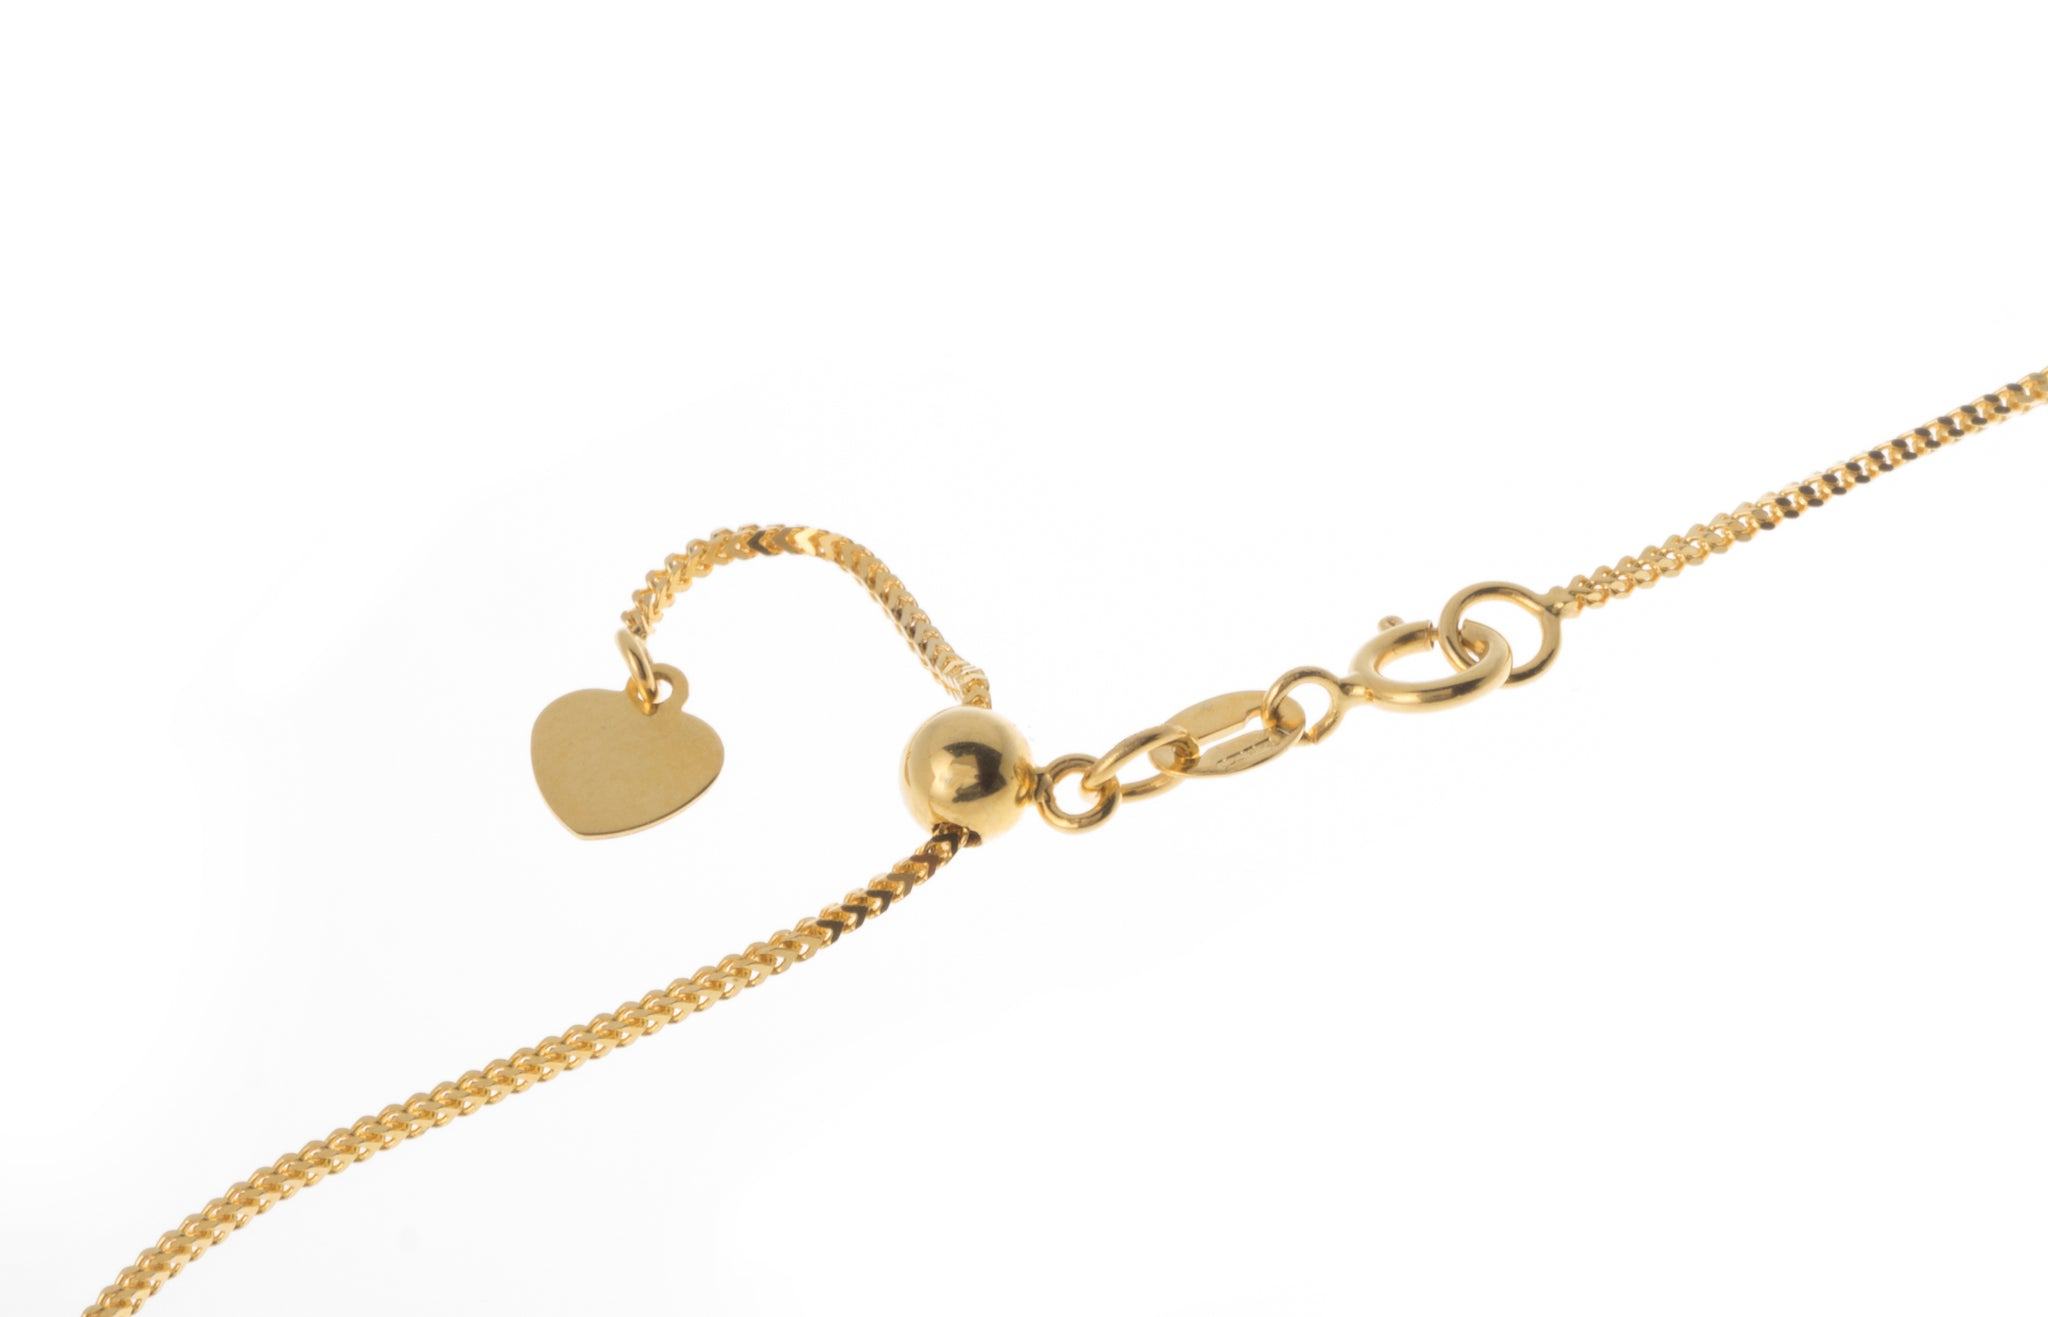 18ct Yellow Gold Adjustable Chain with Heart Charm and Ring Clasp (3.3g) CH-11196